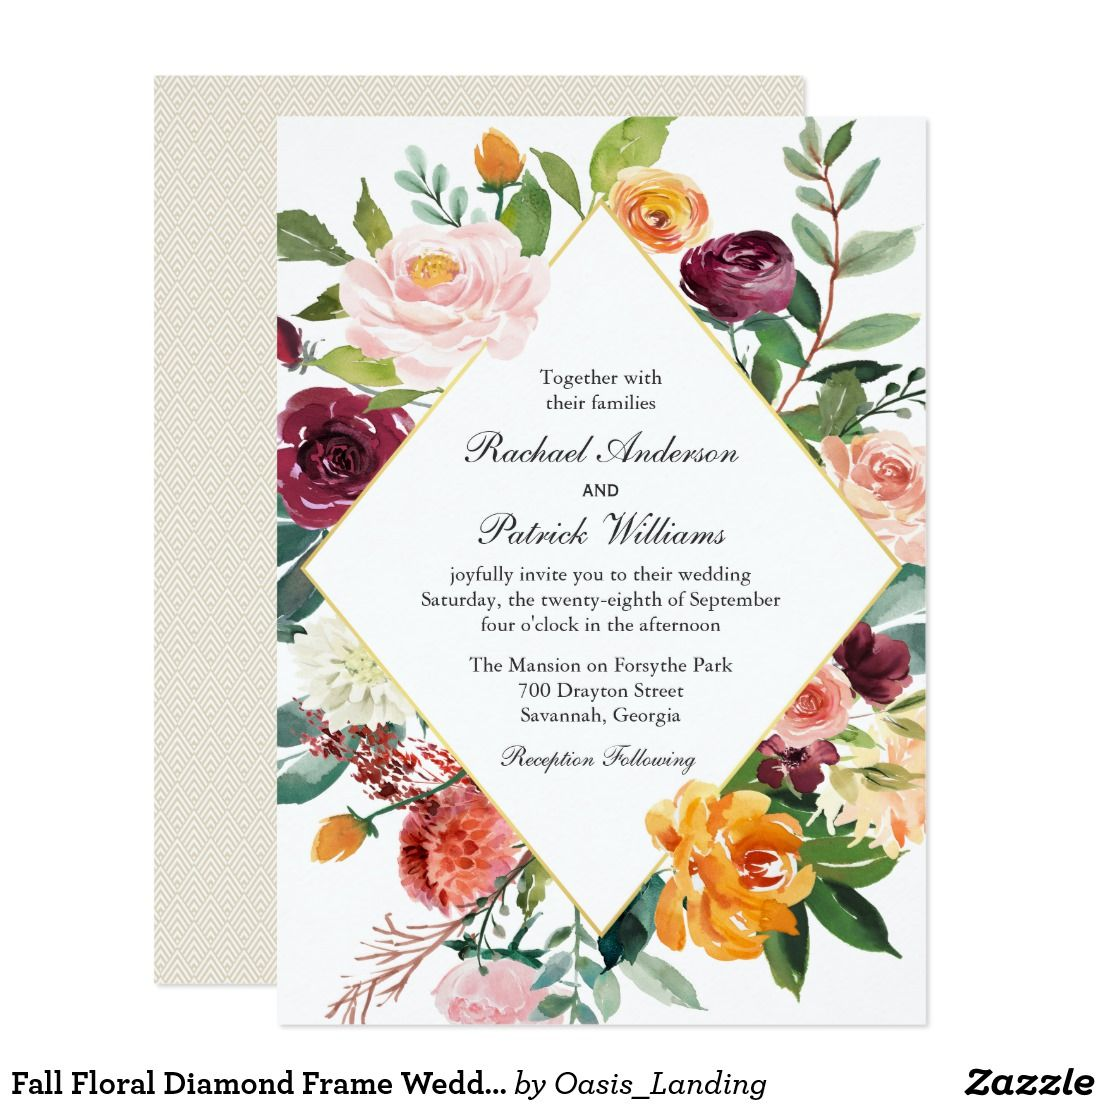 Fall Floral Diamond Frame Wedding Invitation Wedding Card Fall